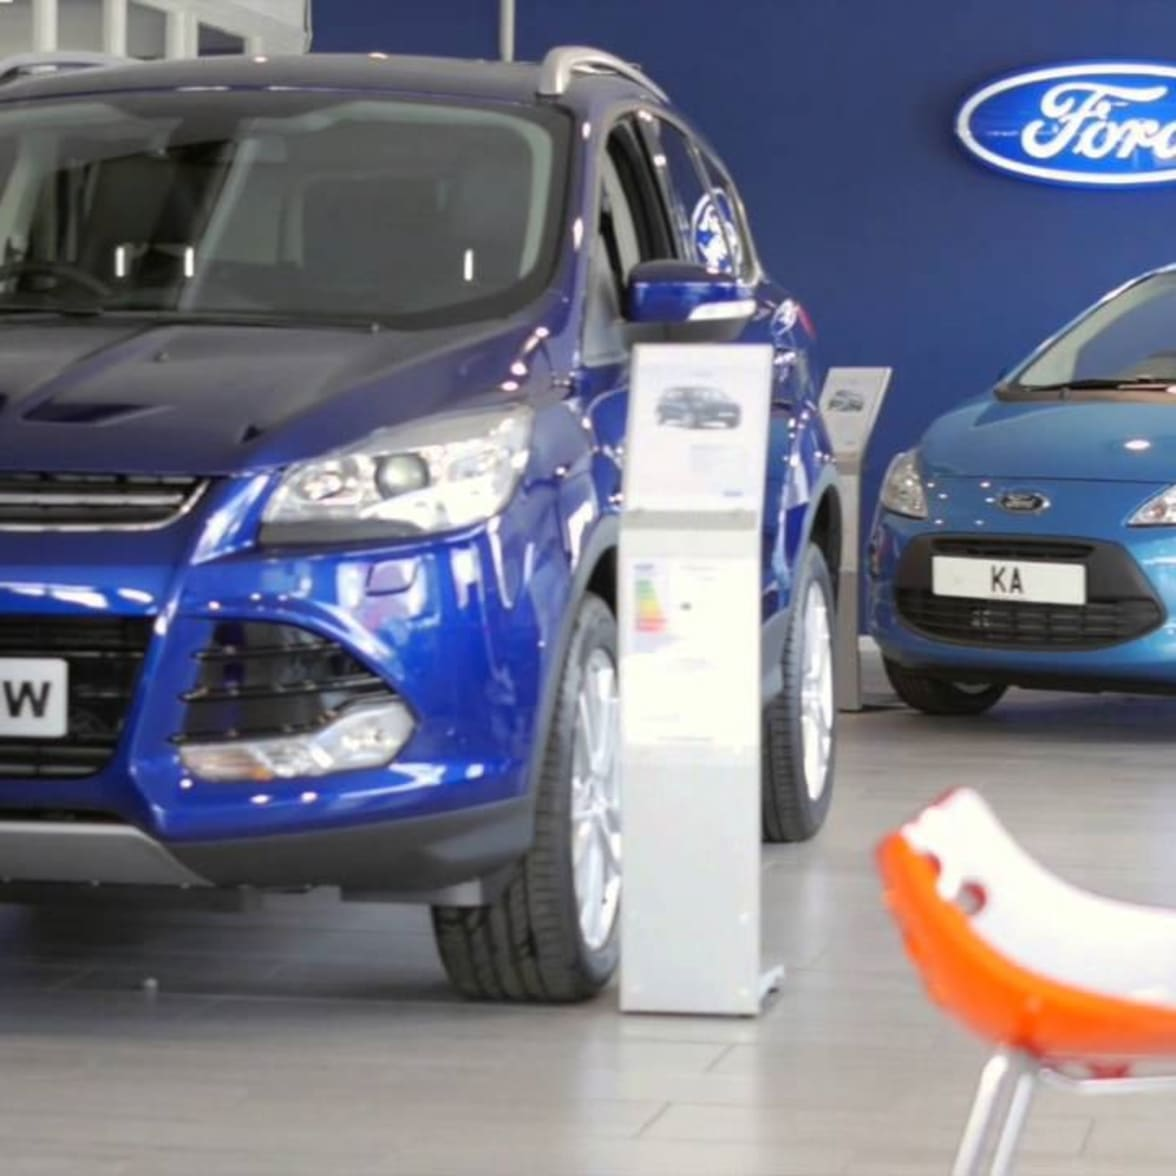 Lookers extends ford network with purchase of pollendine motors